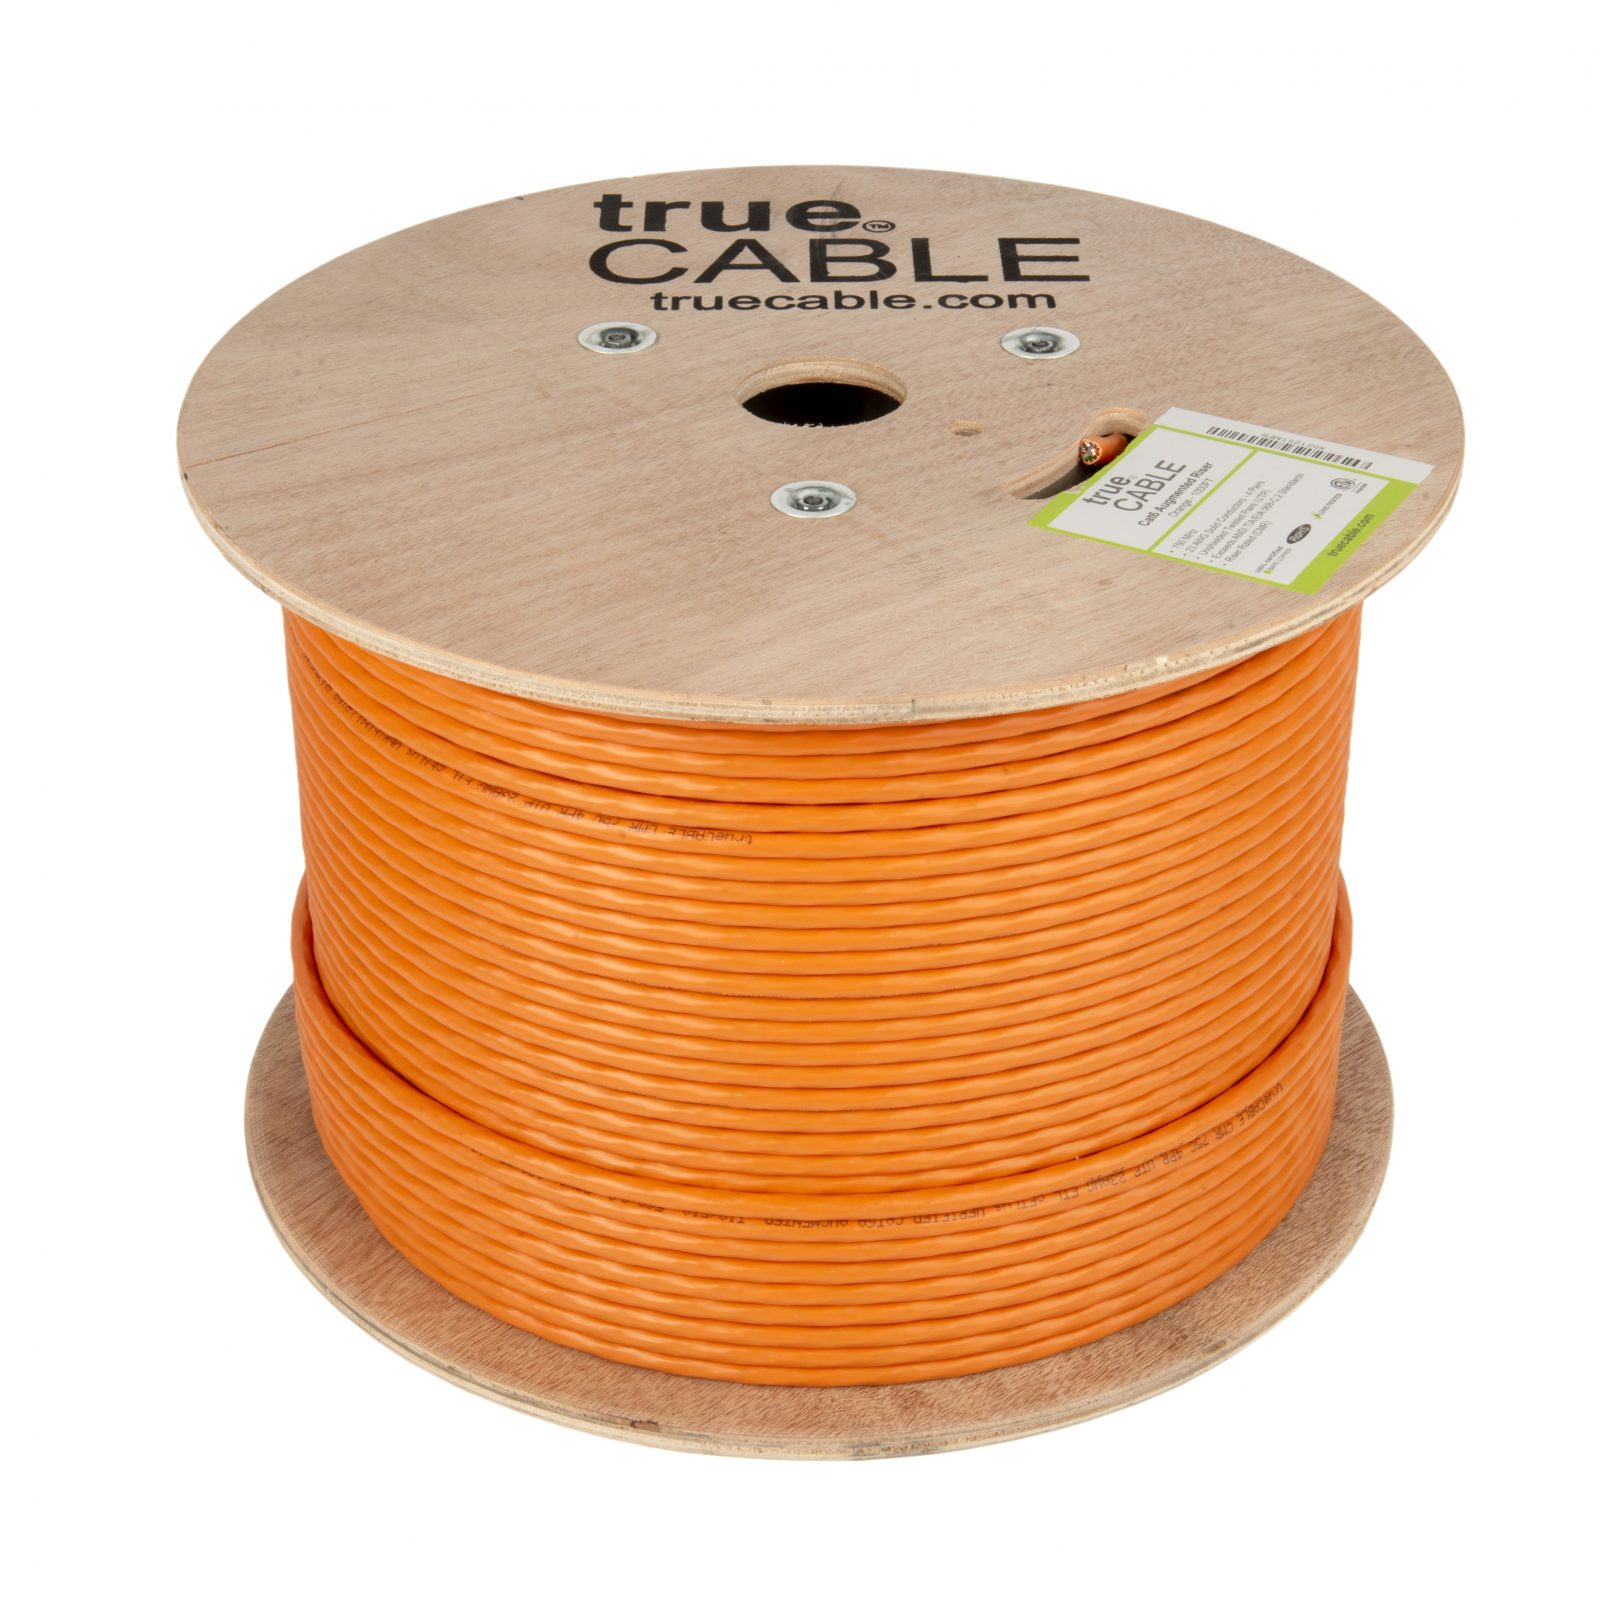 True cable dark yellow cable reel photographed by Robintek Photography